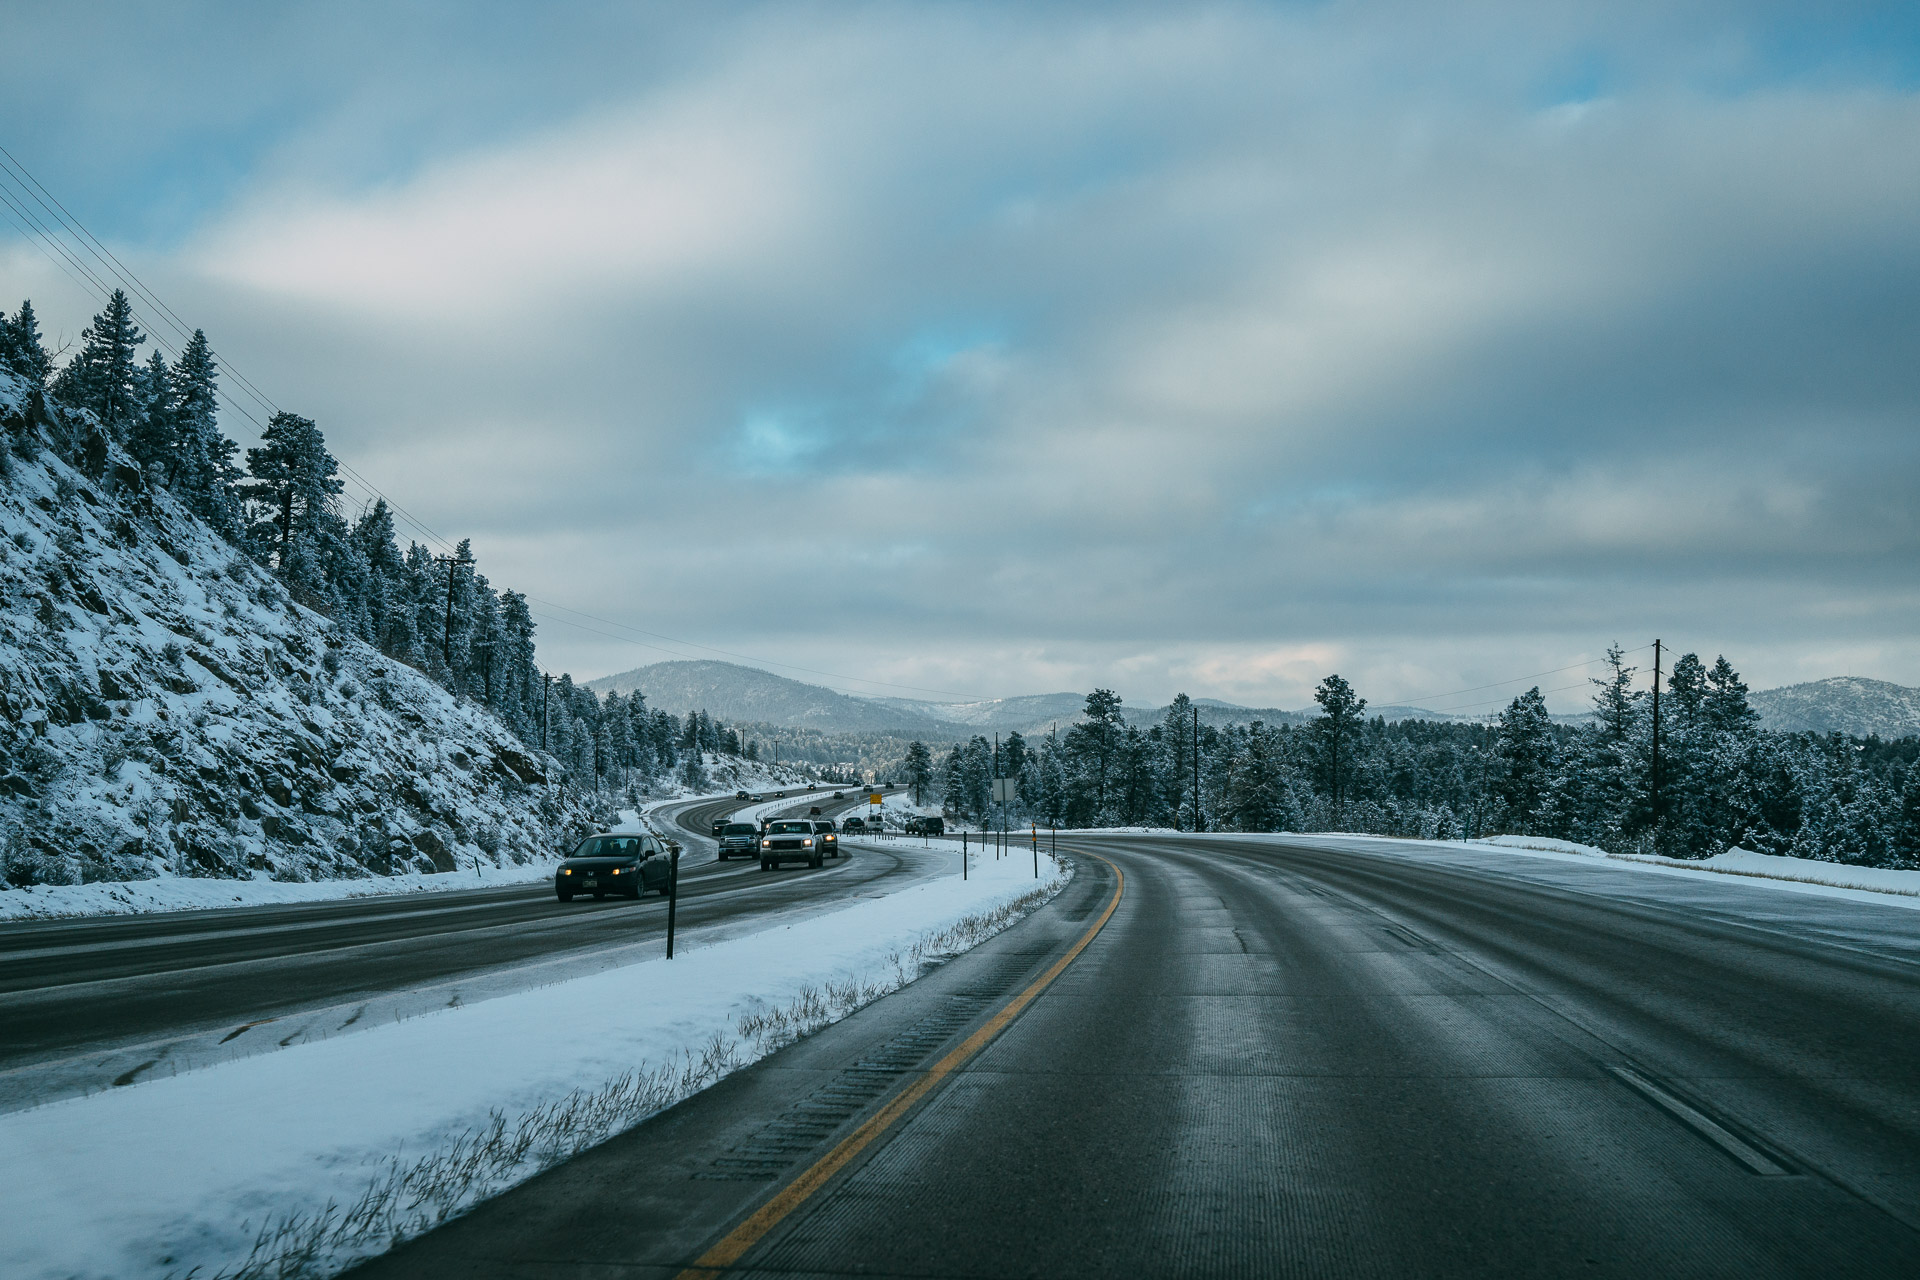 A frosty drive on Highway 285 in Conifer, about 20 miles southwest of Denver.